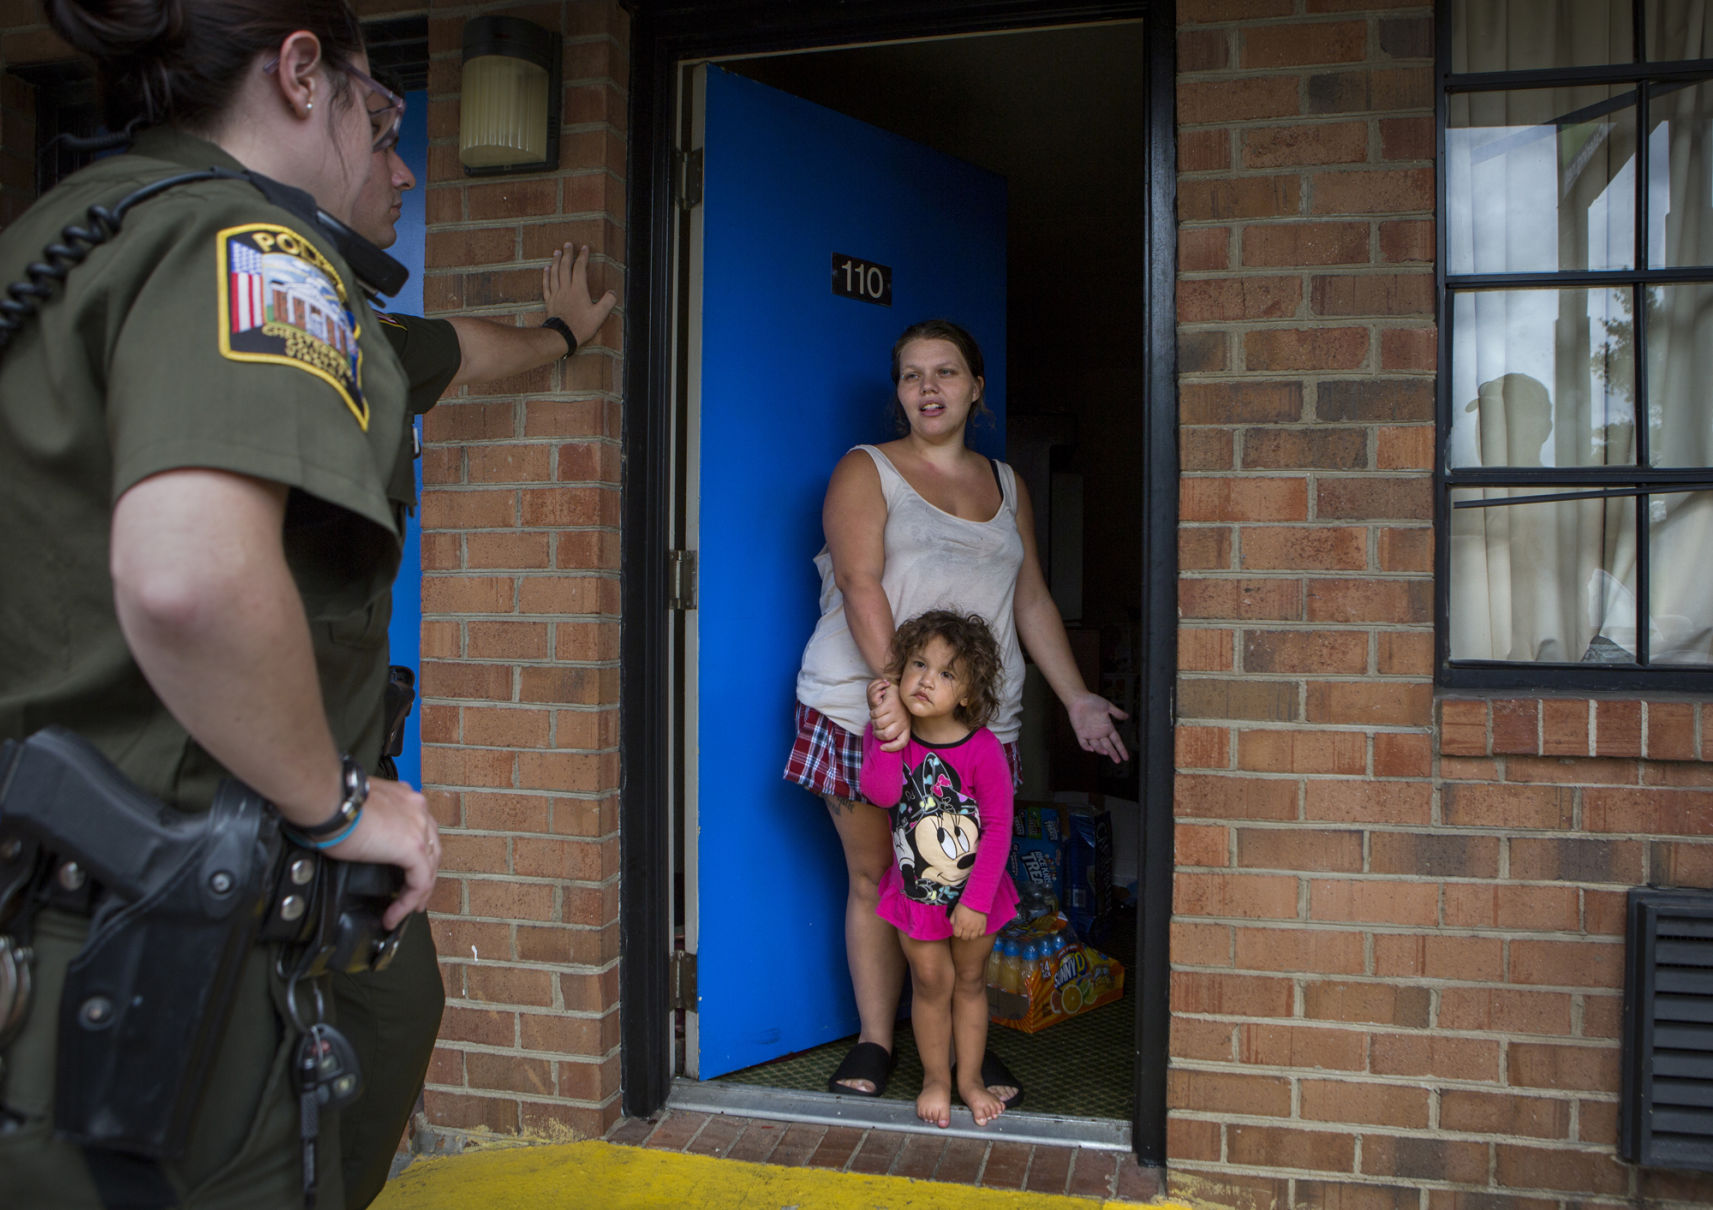 Kelsey Ratliff stands with her daughter Liliana, 2, in the doorway of their room at Americas Best Value Inn while Chesterfield County police officers explain that she must vacate the property. Ratliff had lived at the motel since Christmas 2016, but because she has switched rooms, the Landlord-Tenant Act does not apply to her and she is not eligible for the official eviction process.